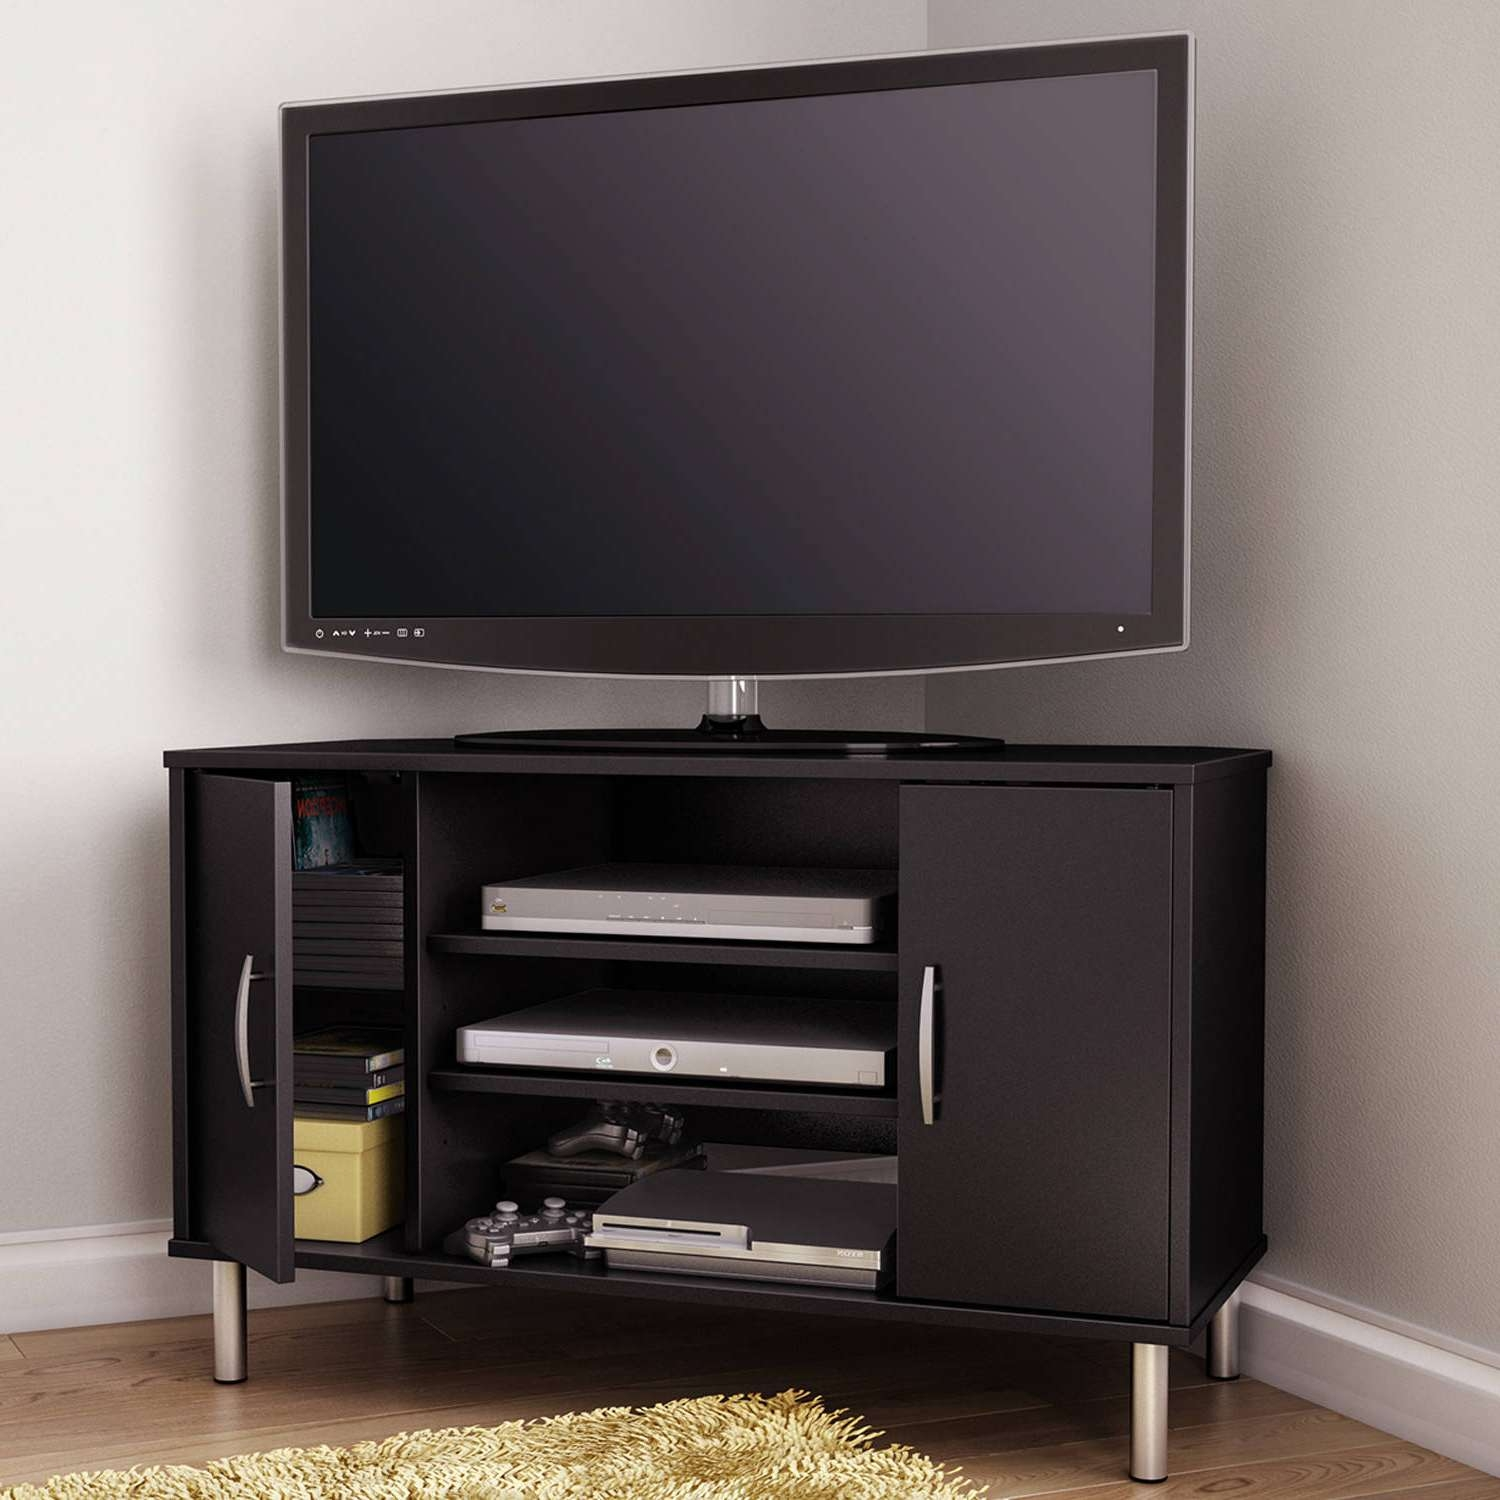 Corner Tv Stands For Flat Screen Tvs Regarding Cheap Corner Tv Stands For Flat Screen (View 6 of 15)